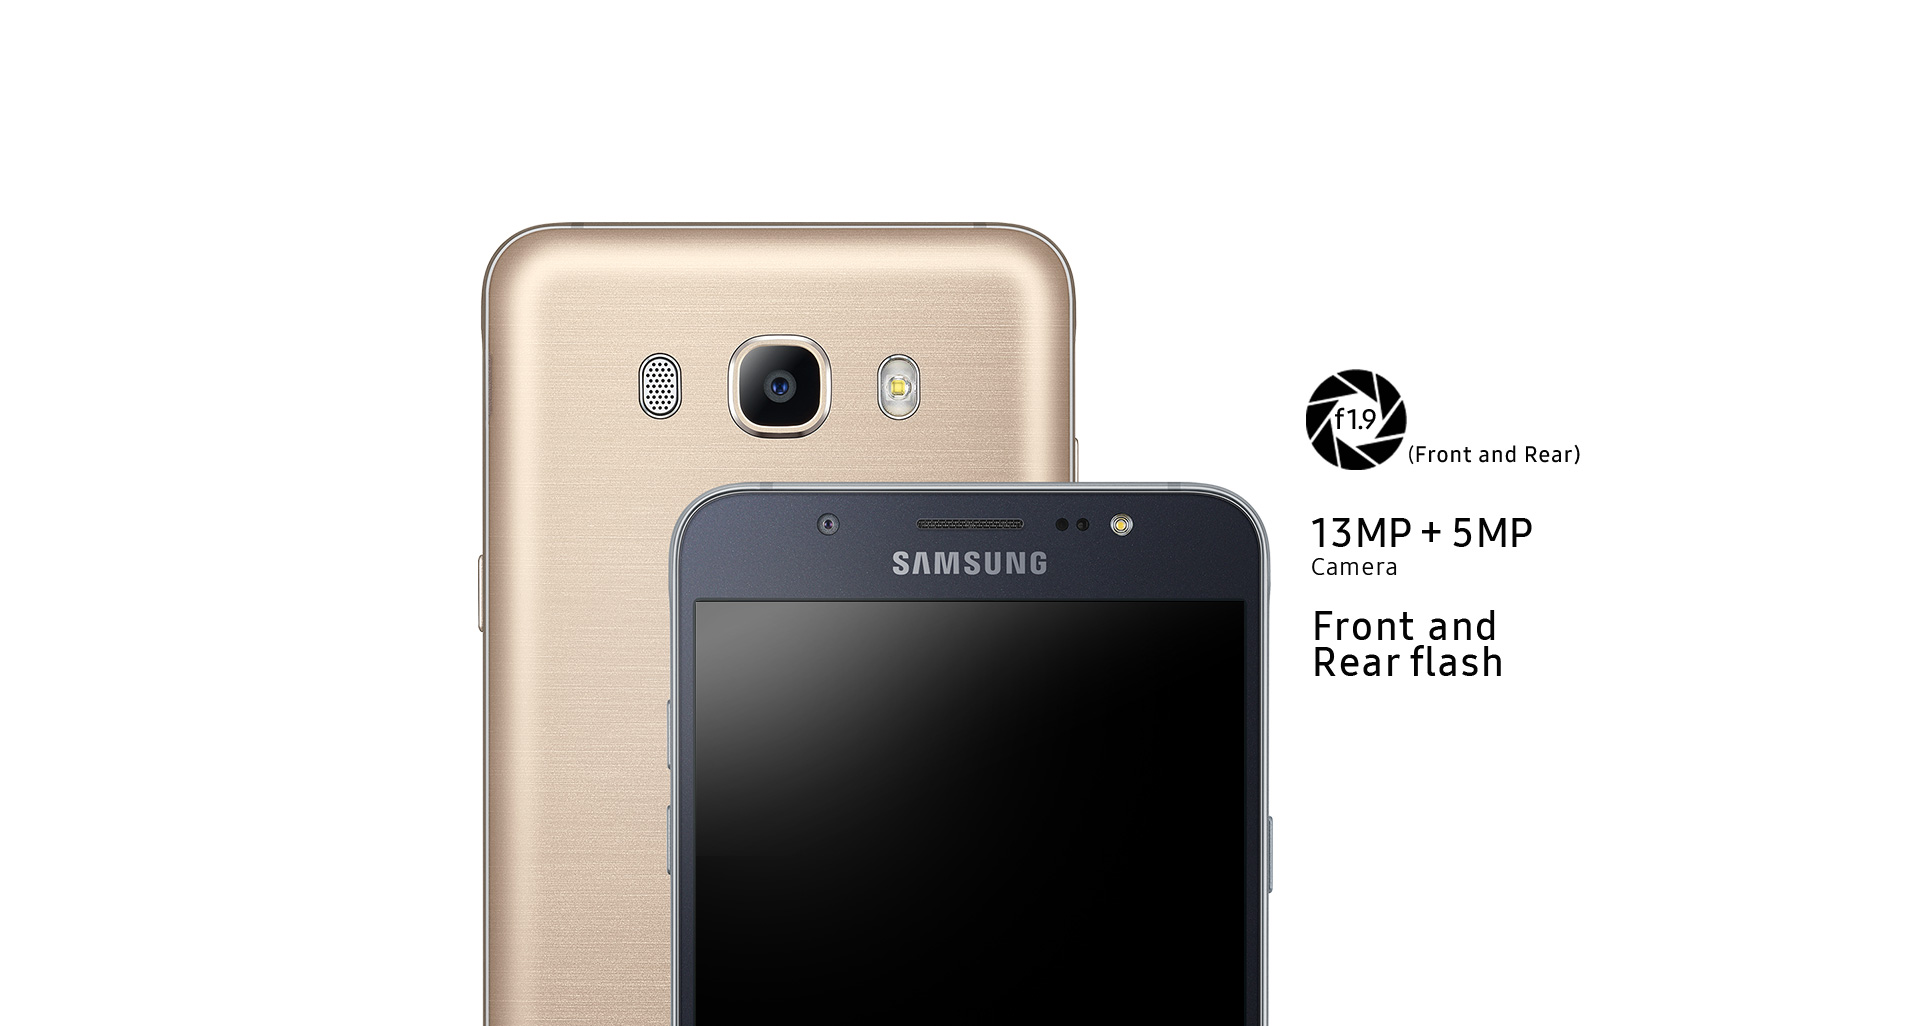 Smartphone with 13MP Front & 5MP Back Camera